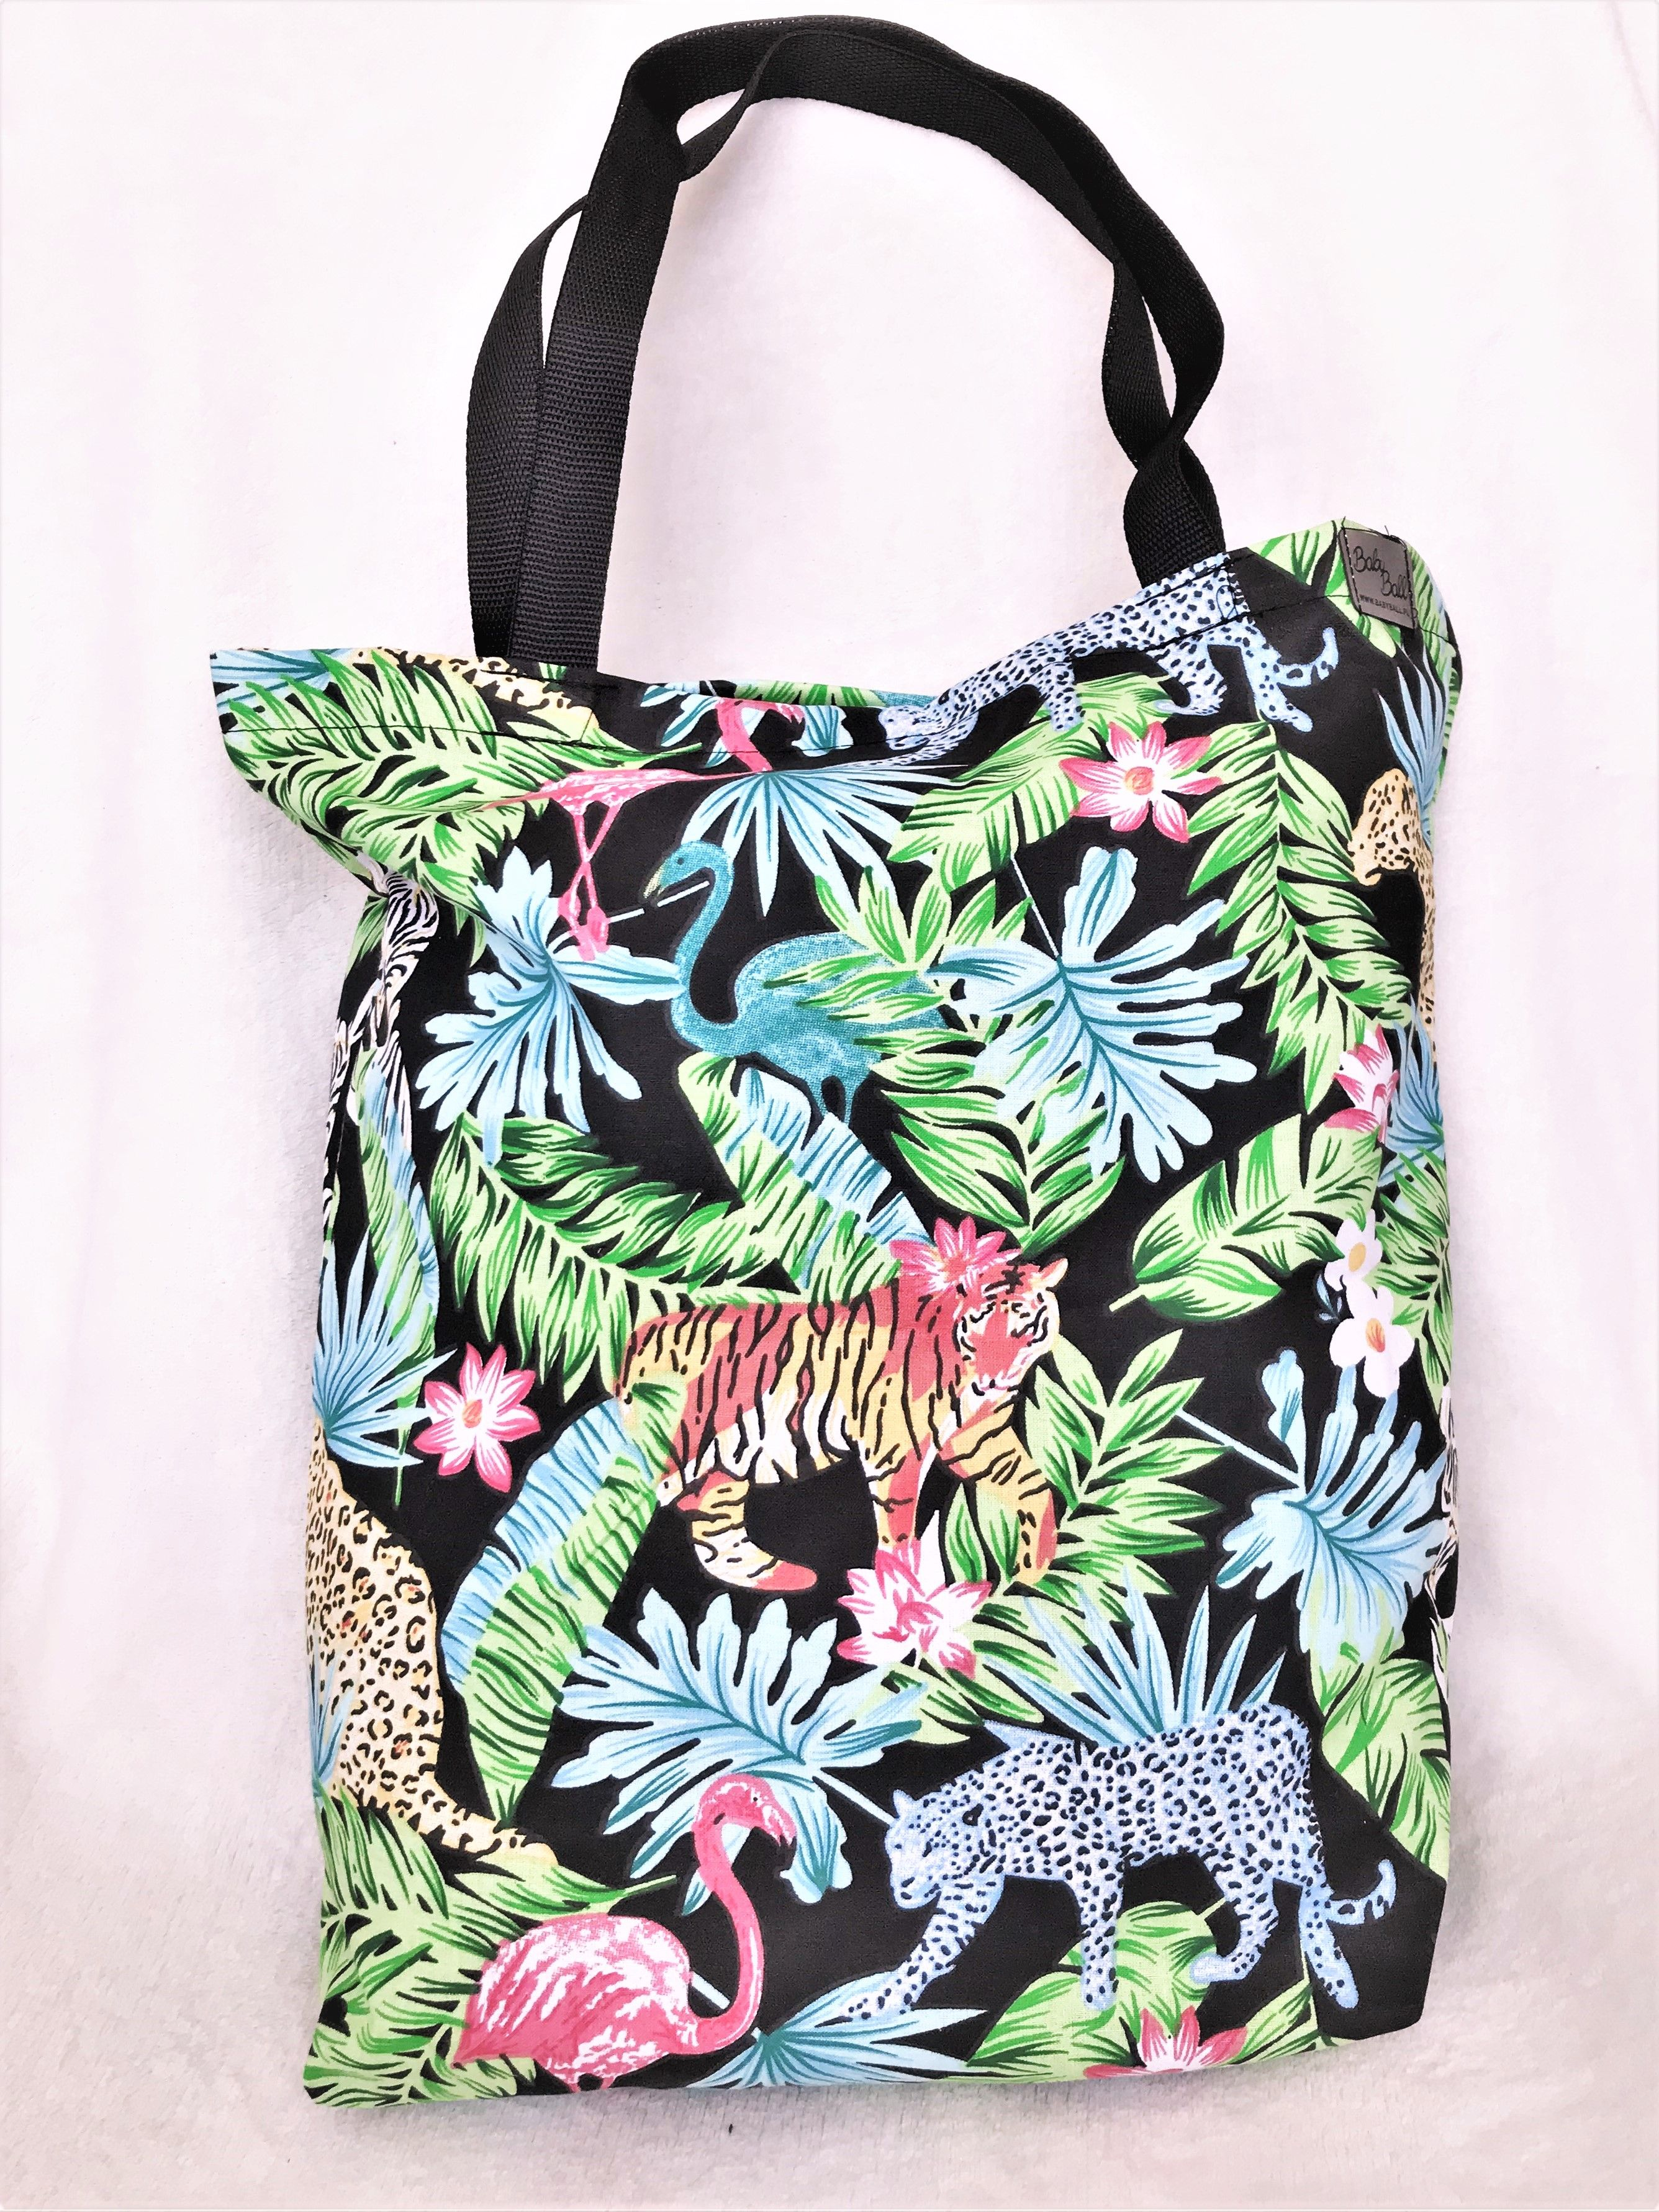 Cotton Eko Bag Fruit With Images Torba Torby